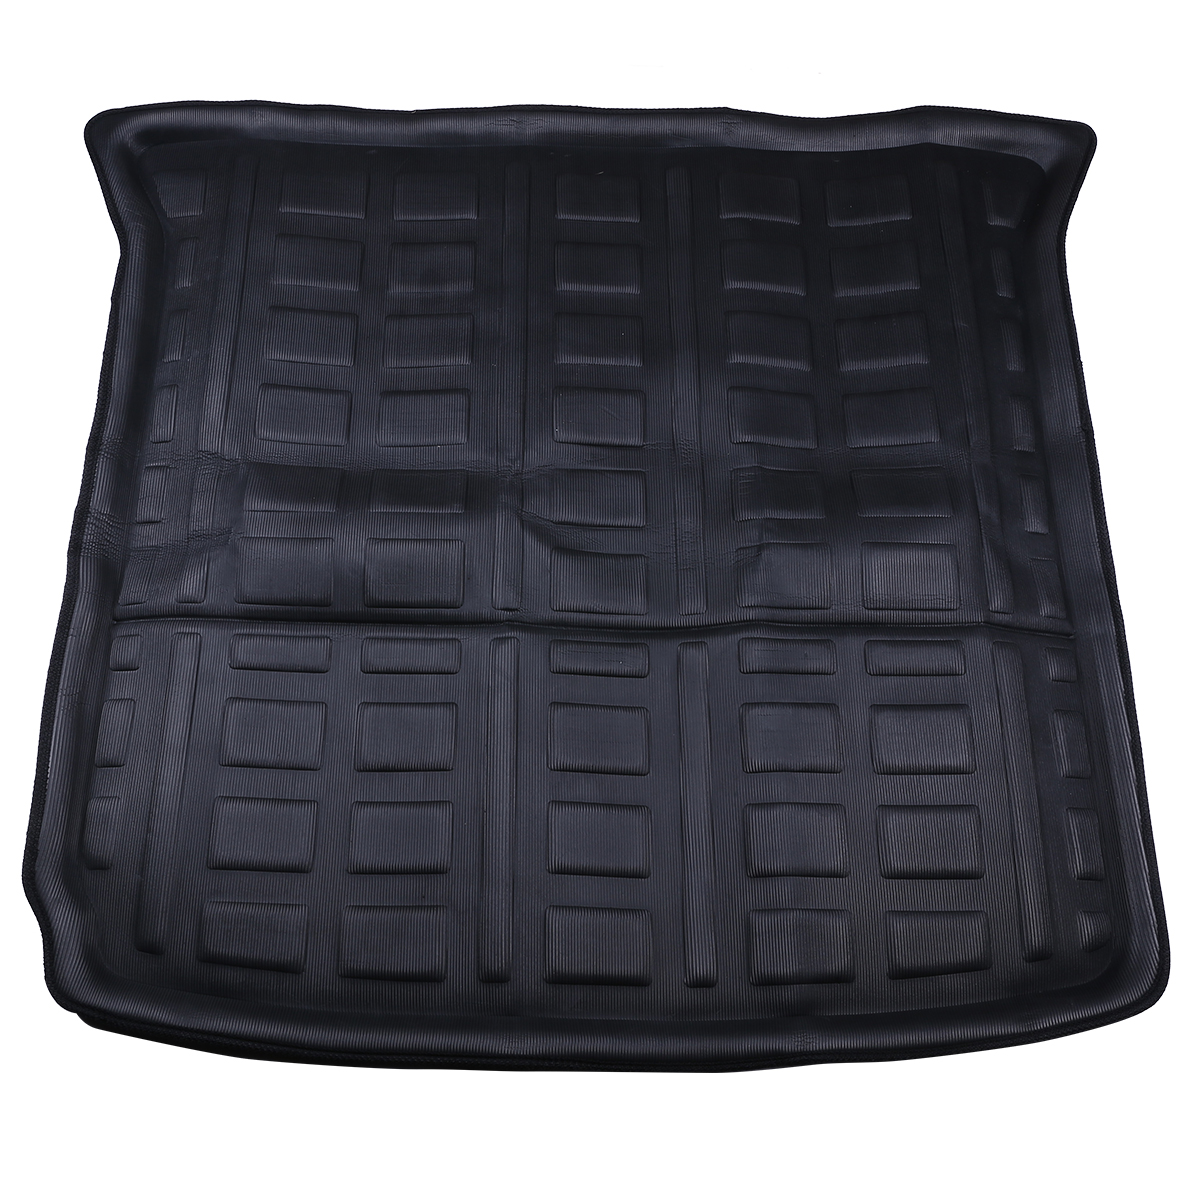 Automobiles & Motorcycles For Dodge Journey Fiat Freemont 09-18 Rear Trunk Boot Liner Cargo Mat Floor Tray Carpet Mud Kick Protector Mayitr 100% Original